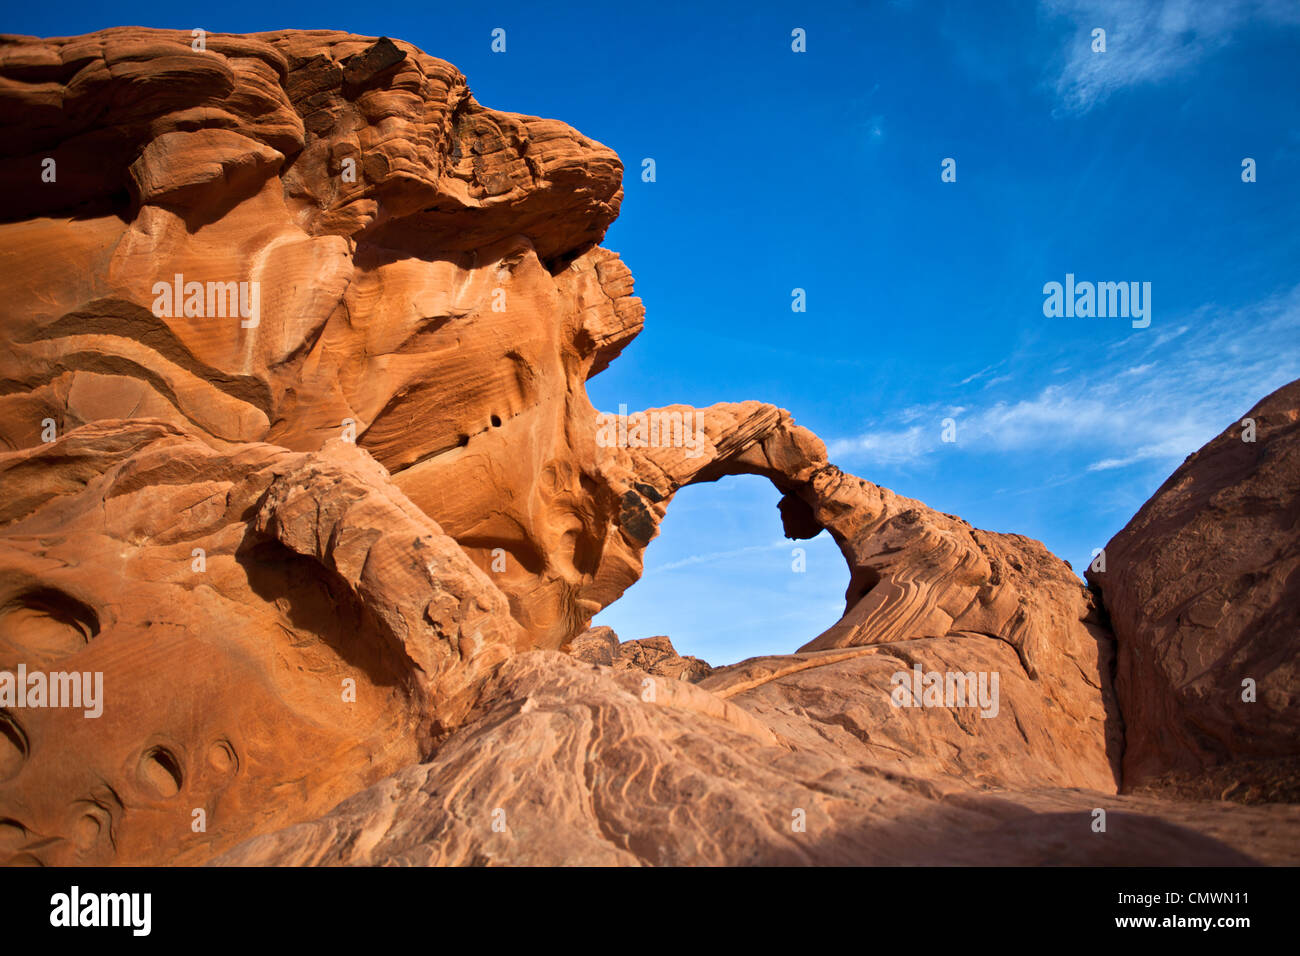 Sandstone Rock formations in Nevada's Valley of Fire - Stock Image